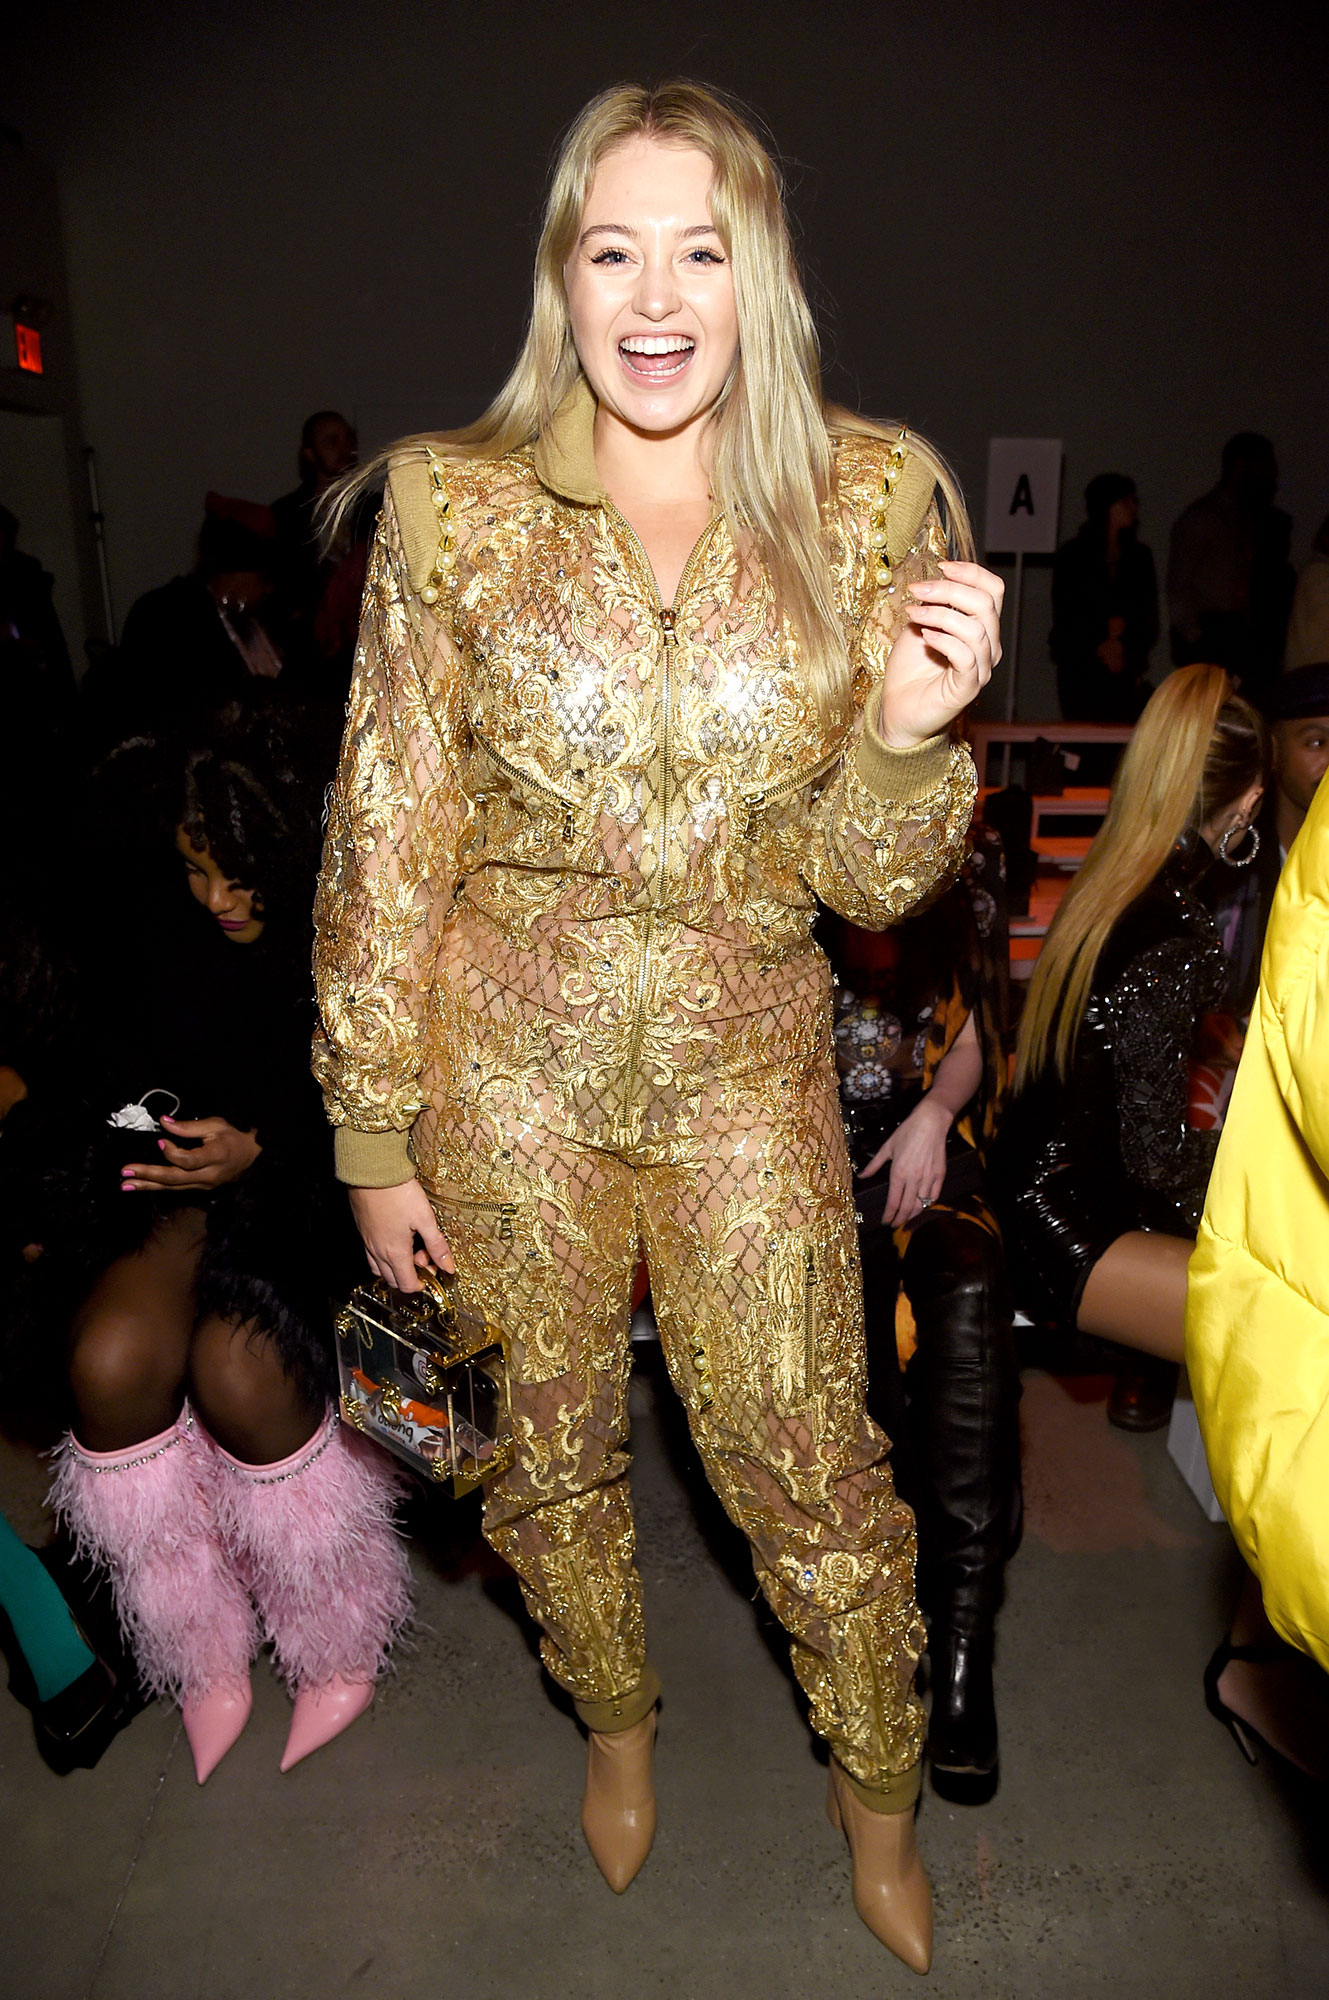 Iskra Lawrence - The model rocked a gold jumpsuit was as radiant as she was at the Blonds show on February 12.